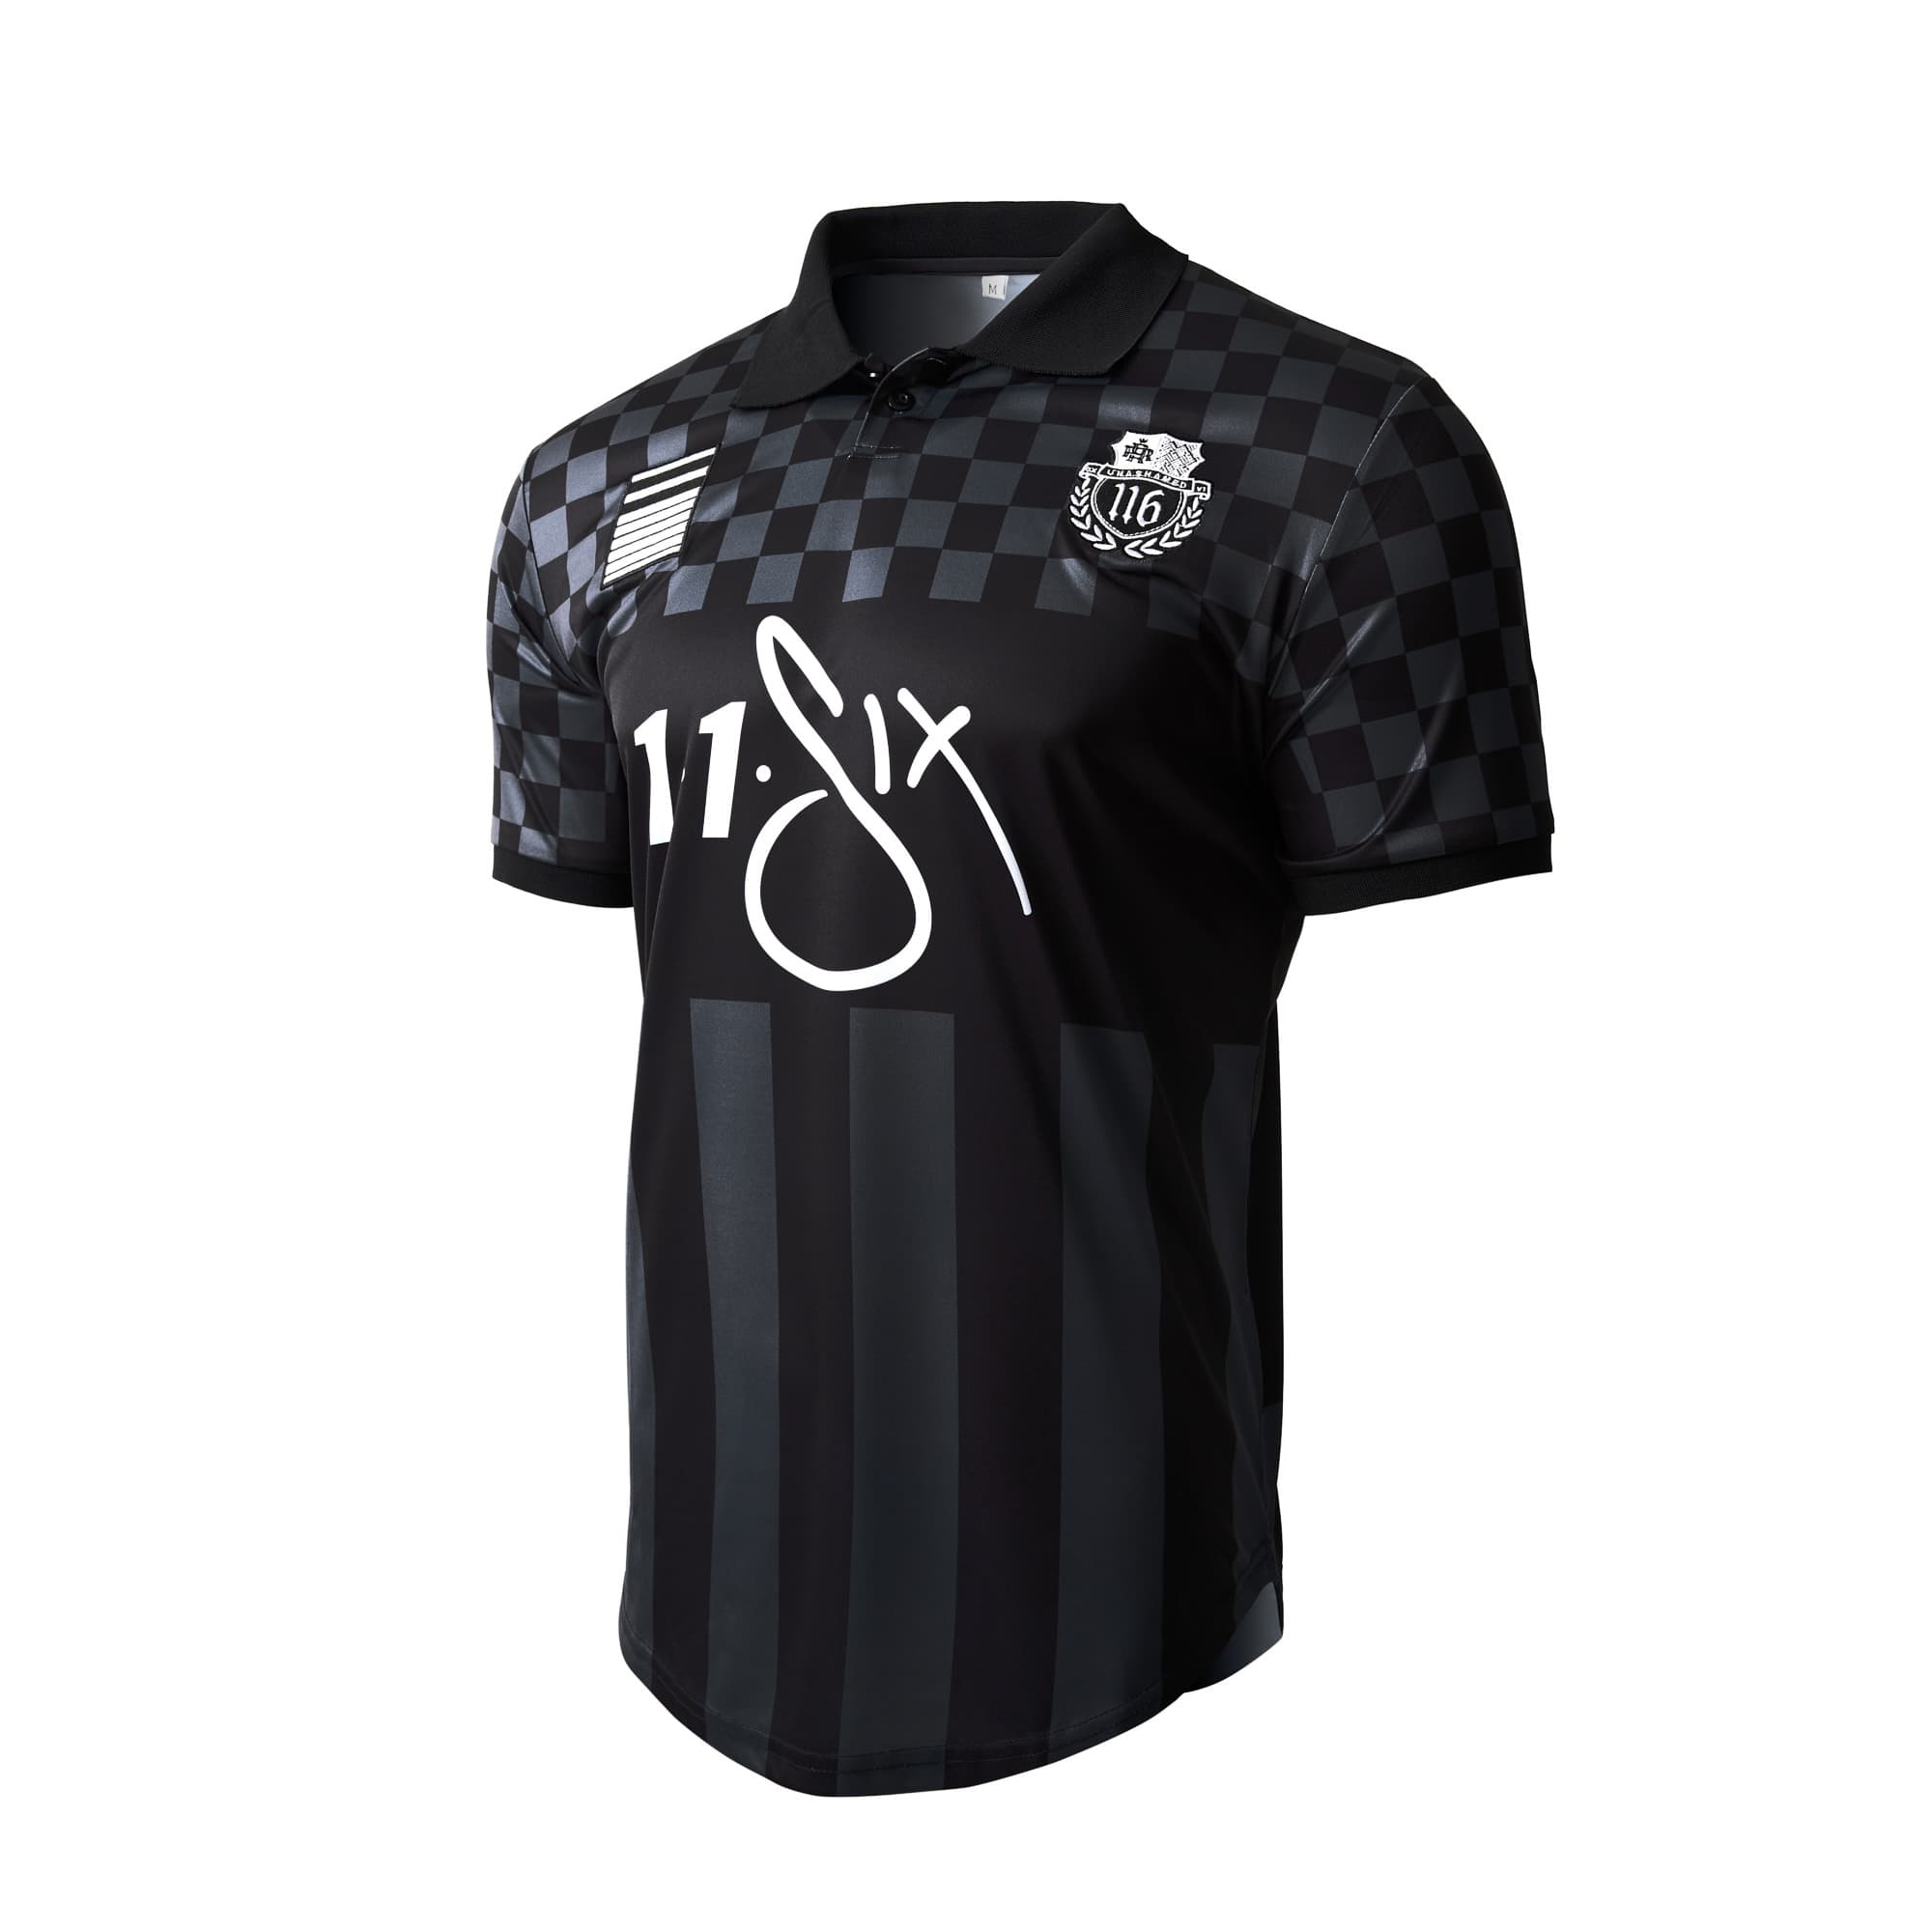 116 Athletics Throwback Soccer Jersey